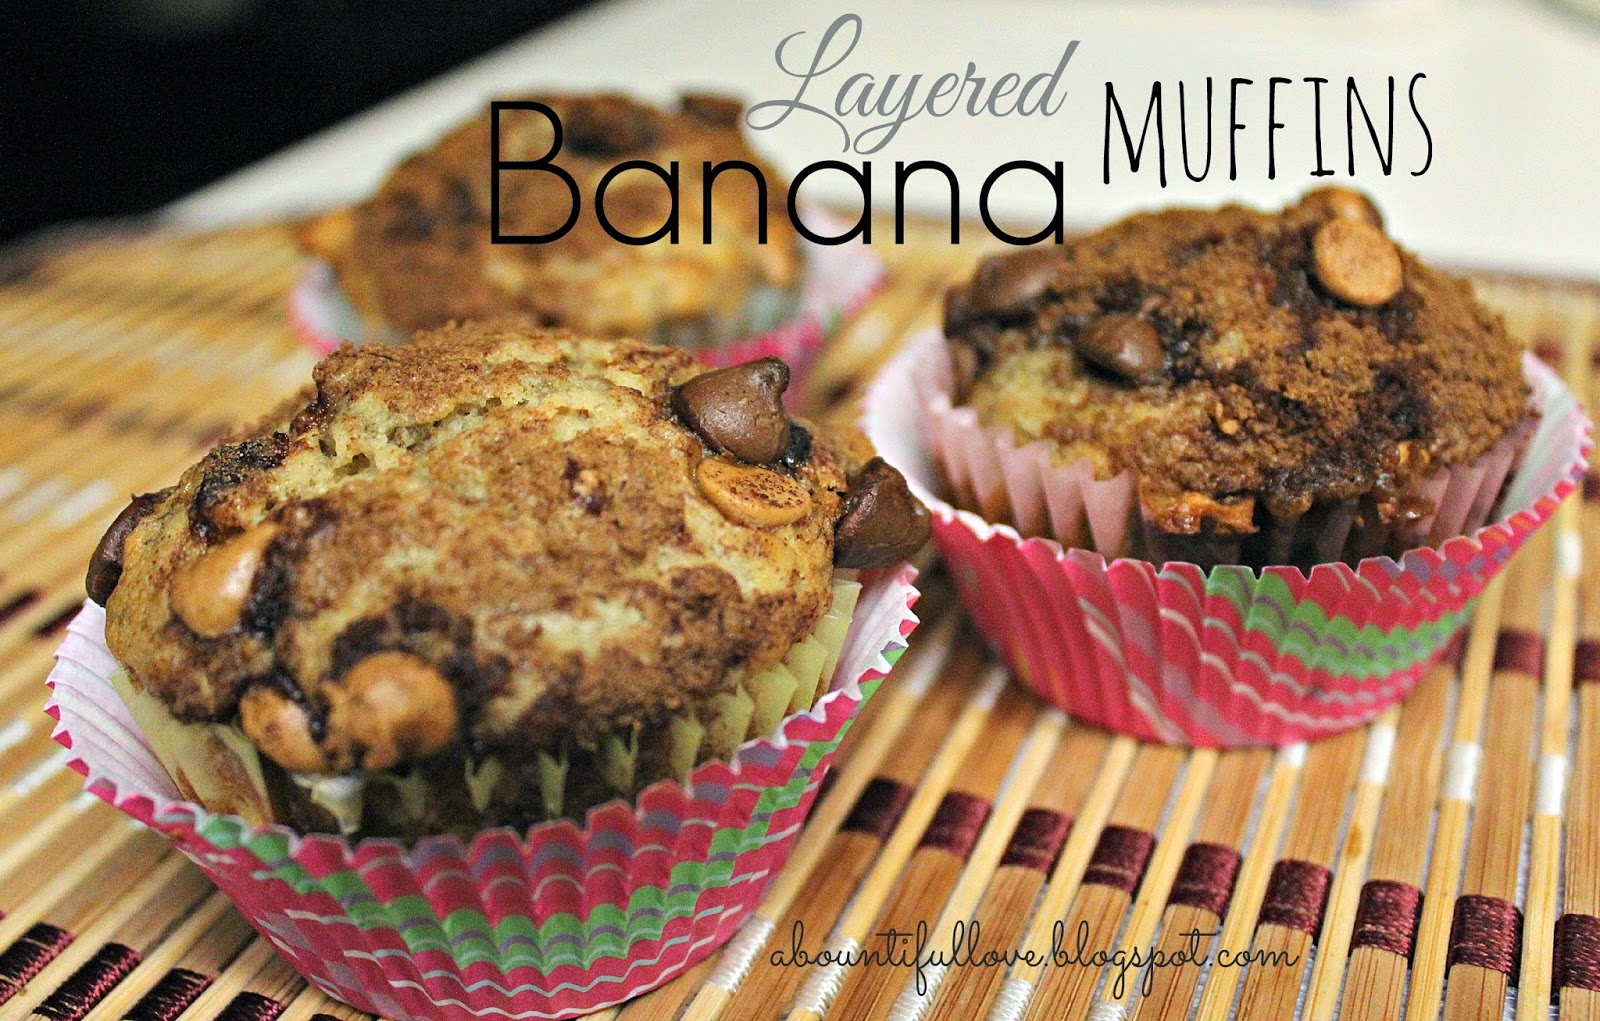 http://abountifullove.blogspot.com/2014/03/layered-banana-muffin.html